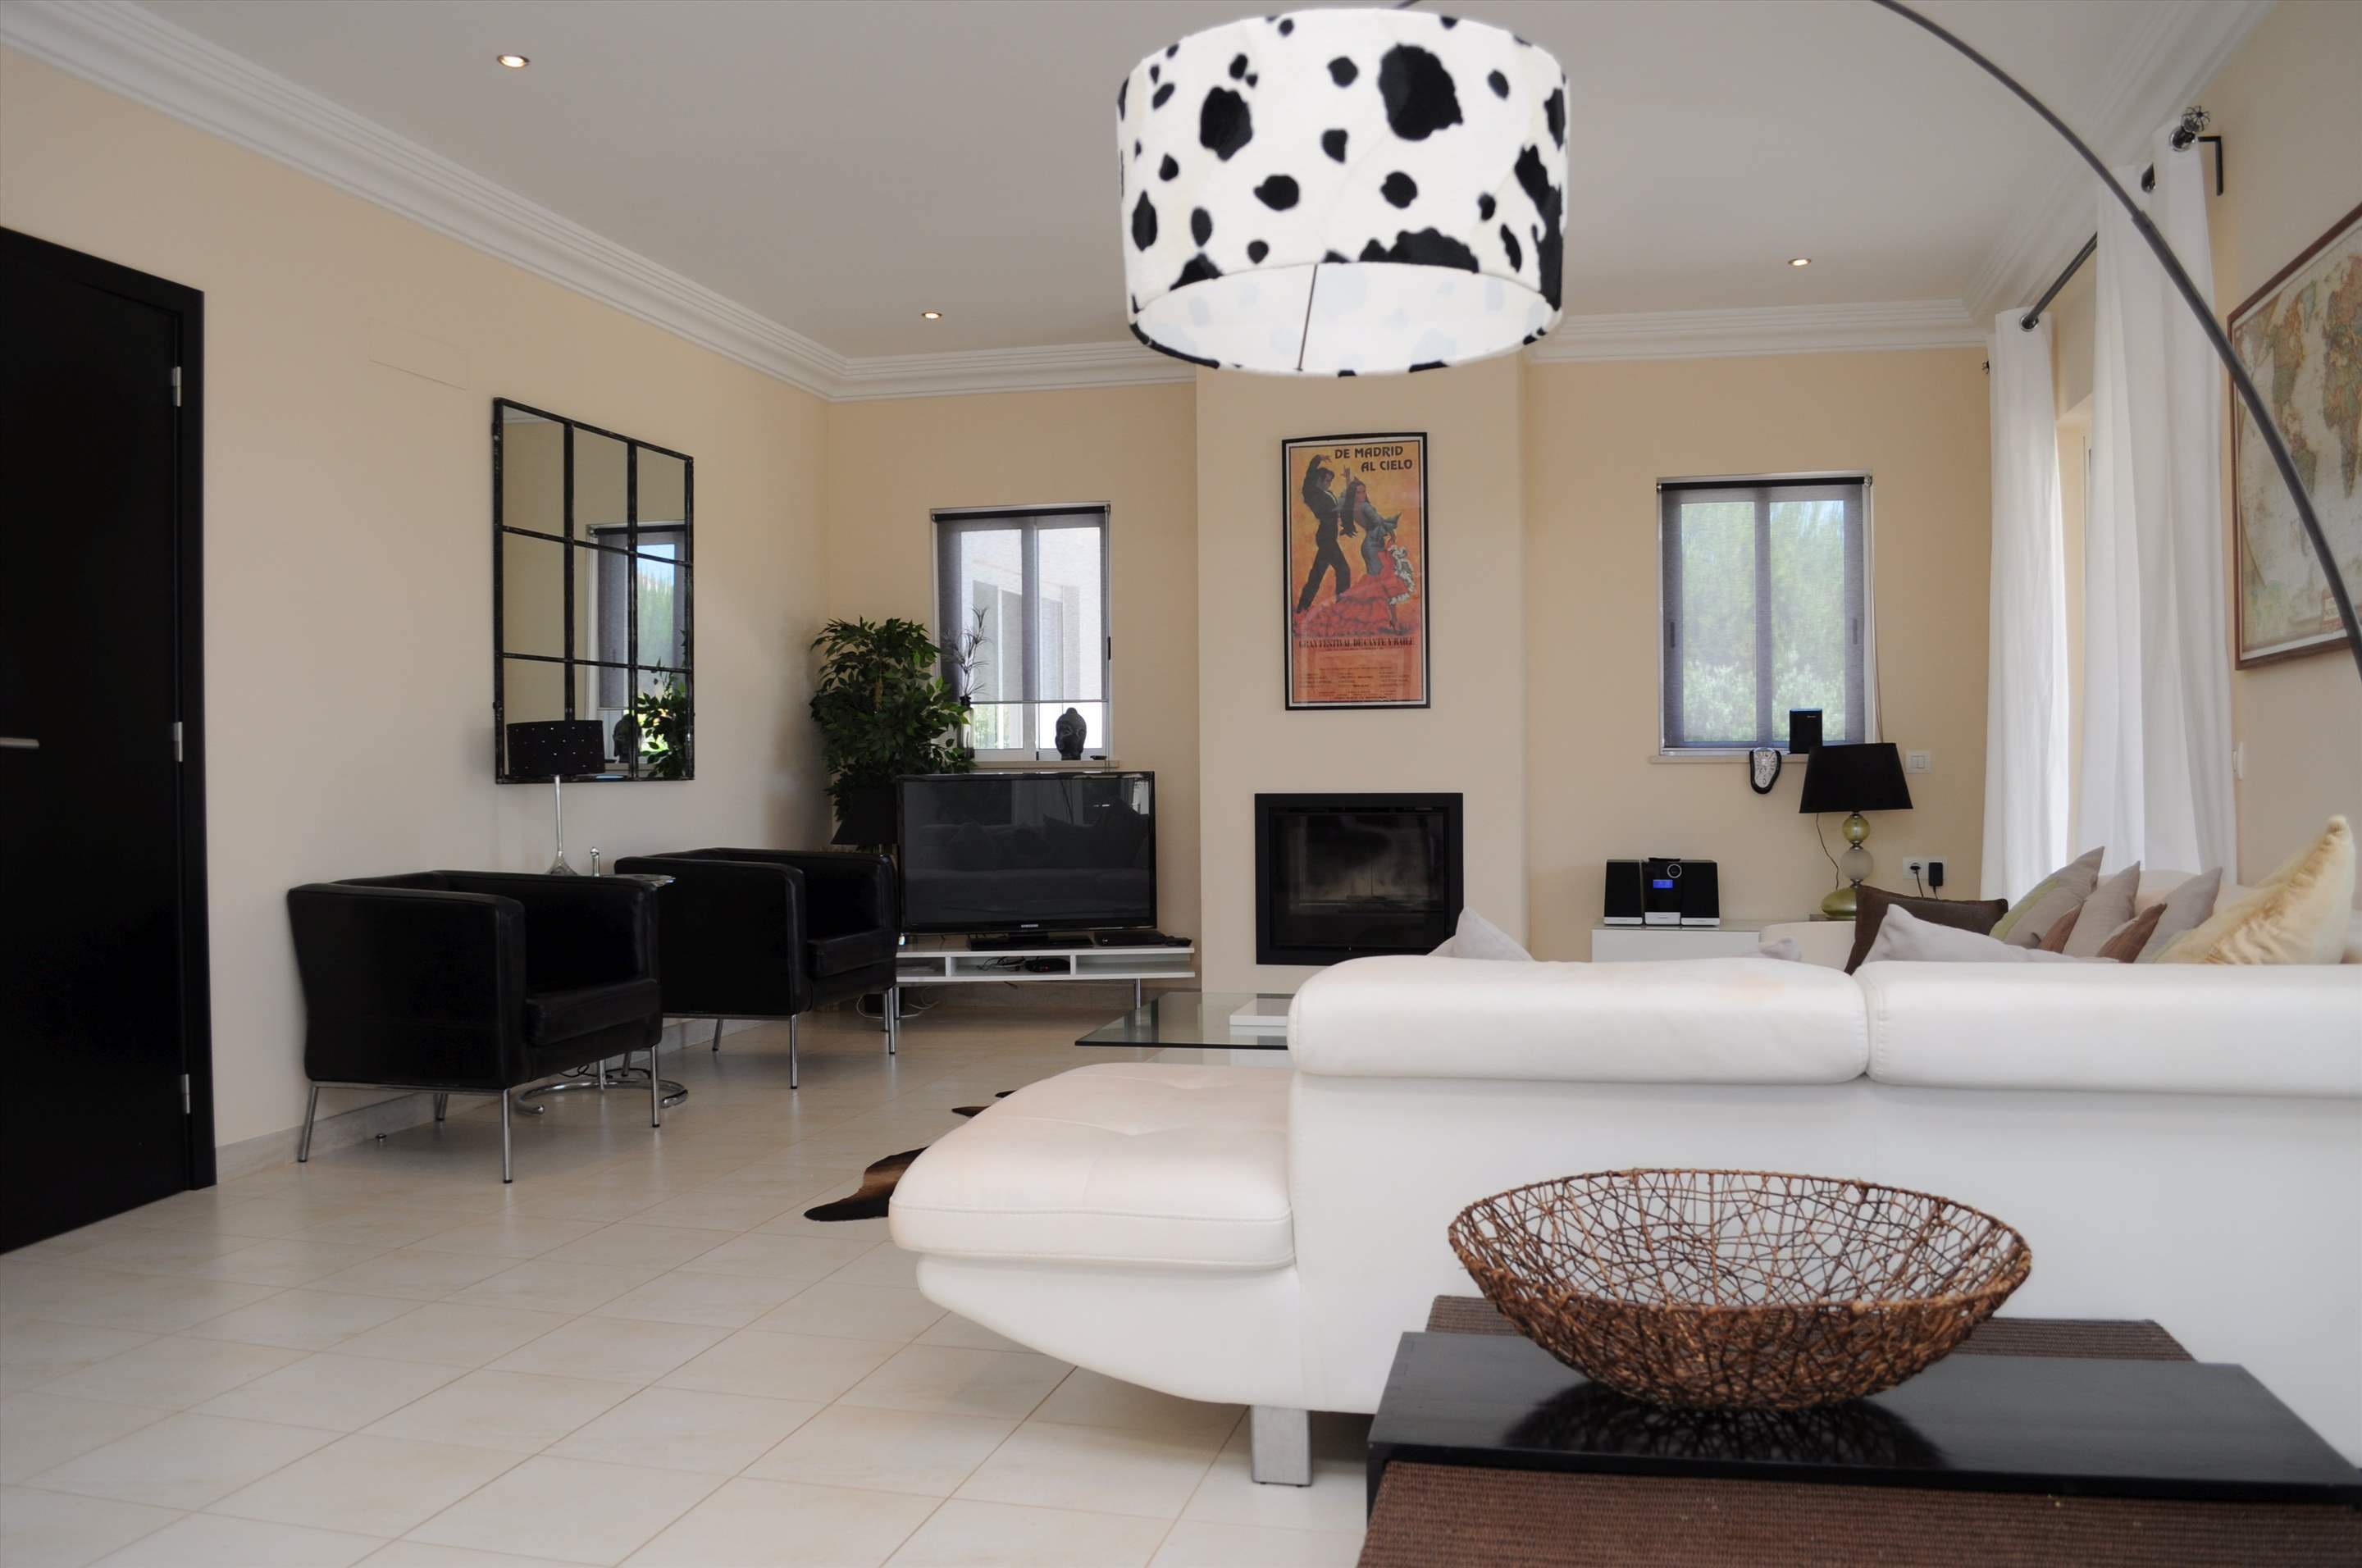 Martinhal Luxury Villa No.18, 5 bedroom villa in Martinhal Sagres, Algarve Photo #3